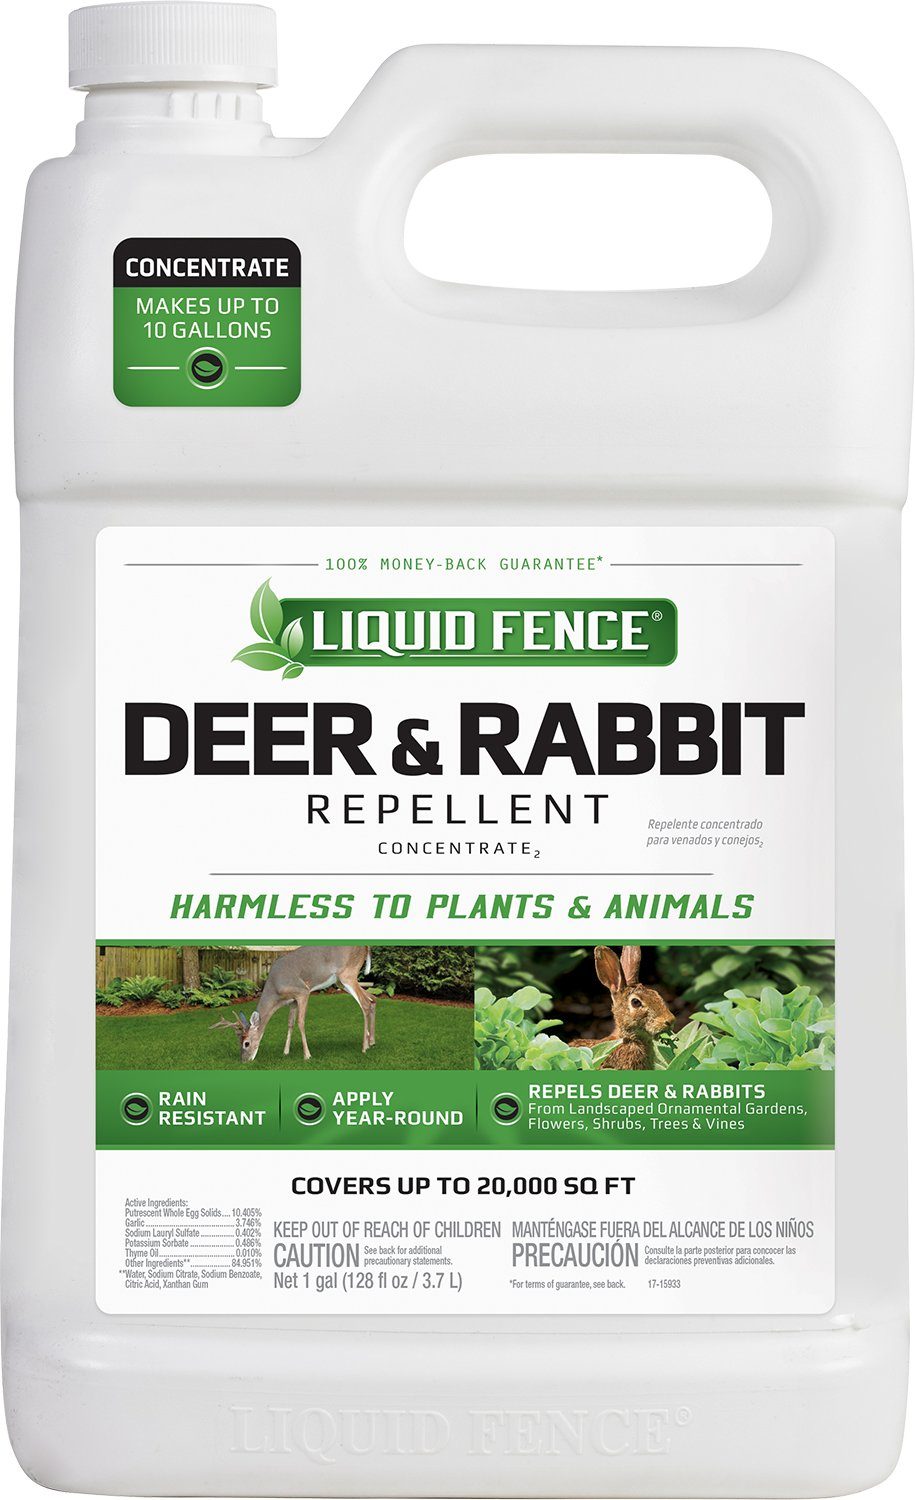 Liquid Fence HG-70111 Deer & Rabbit Concentrate Repellent, 1 gallon by Liquid Fence (Image #1)